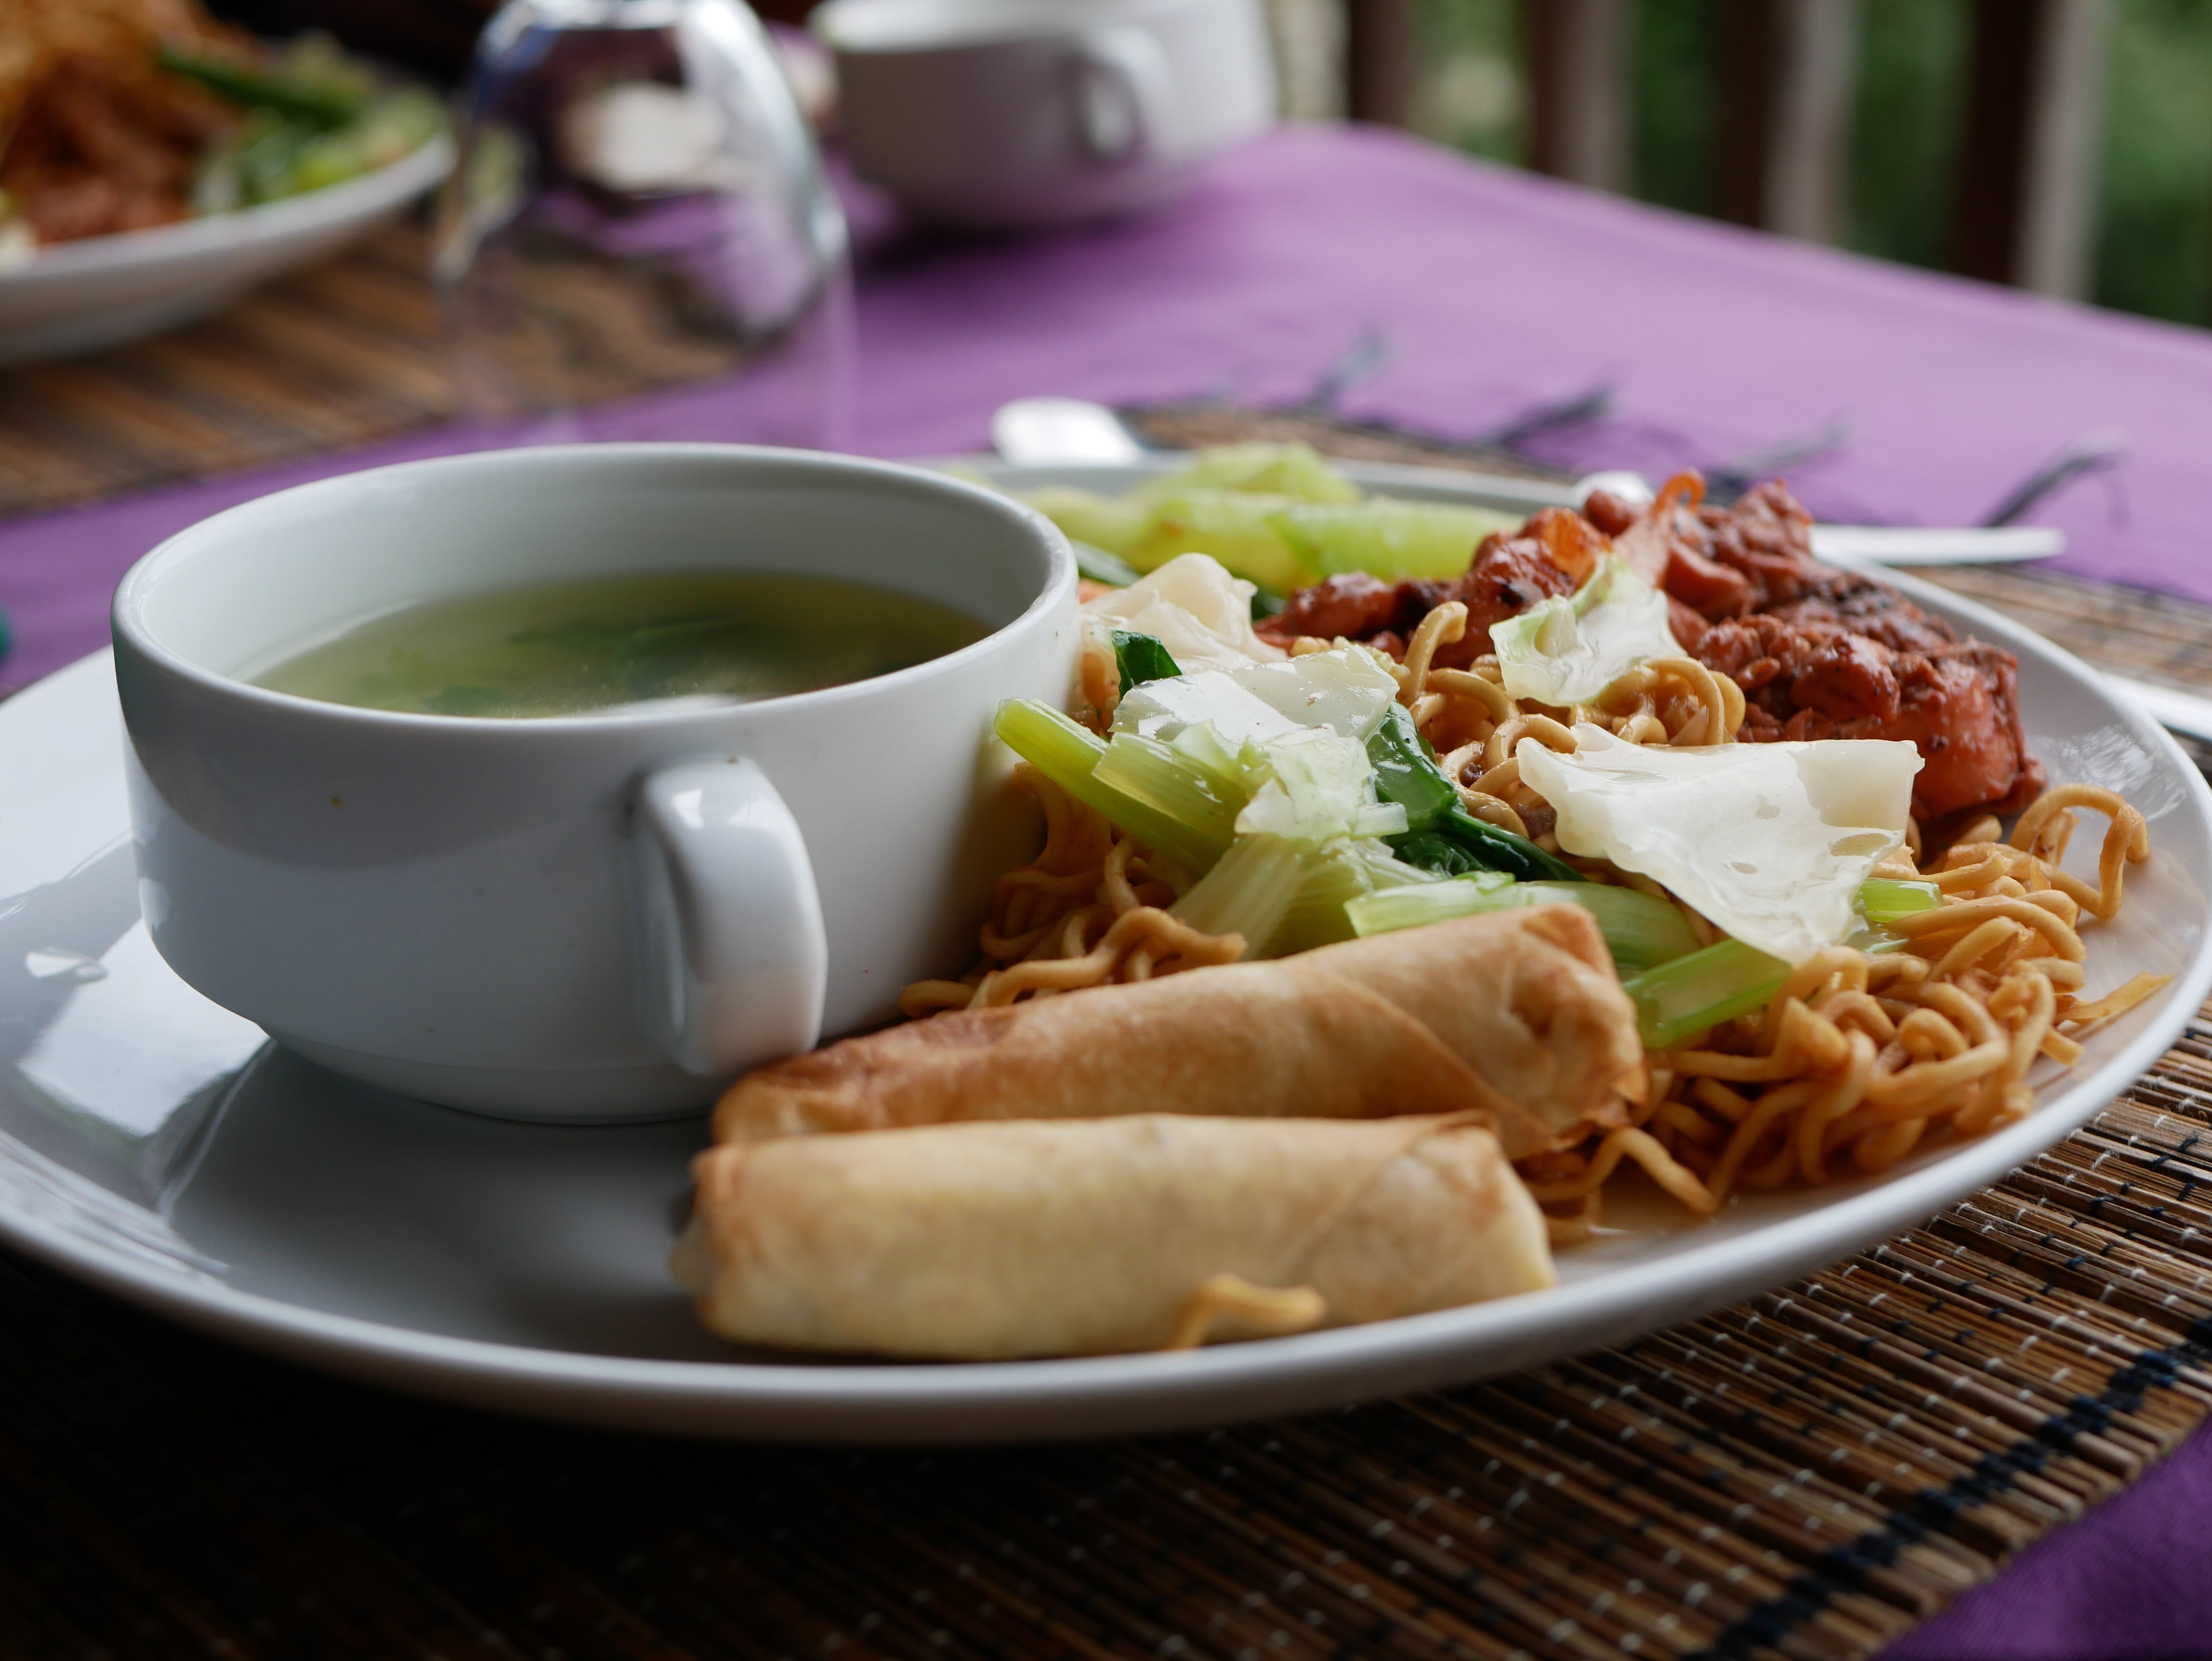 Free stock photo of indonesia, meal, plate, vegetables